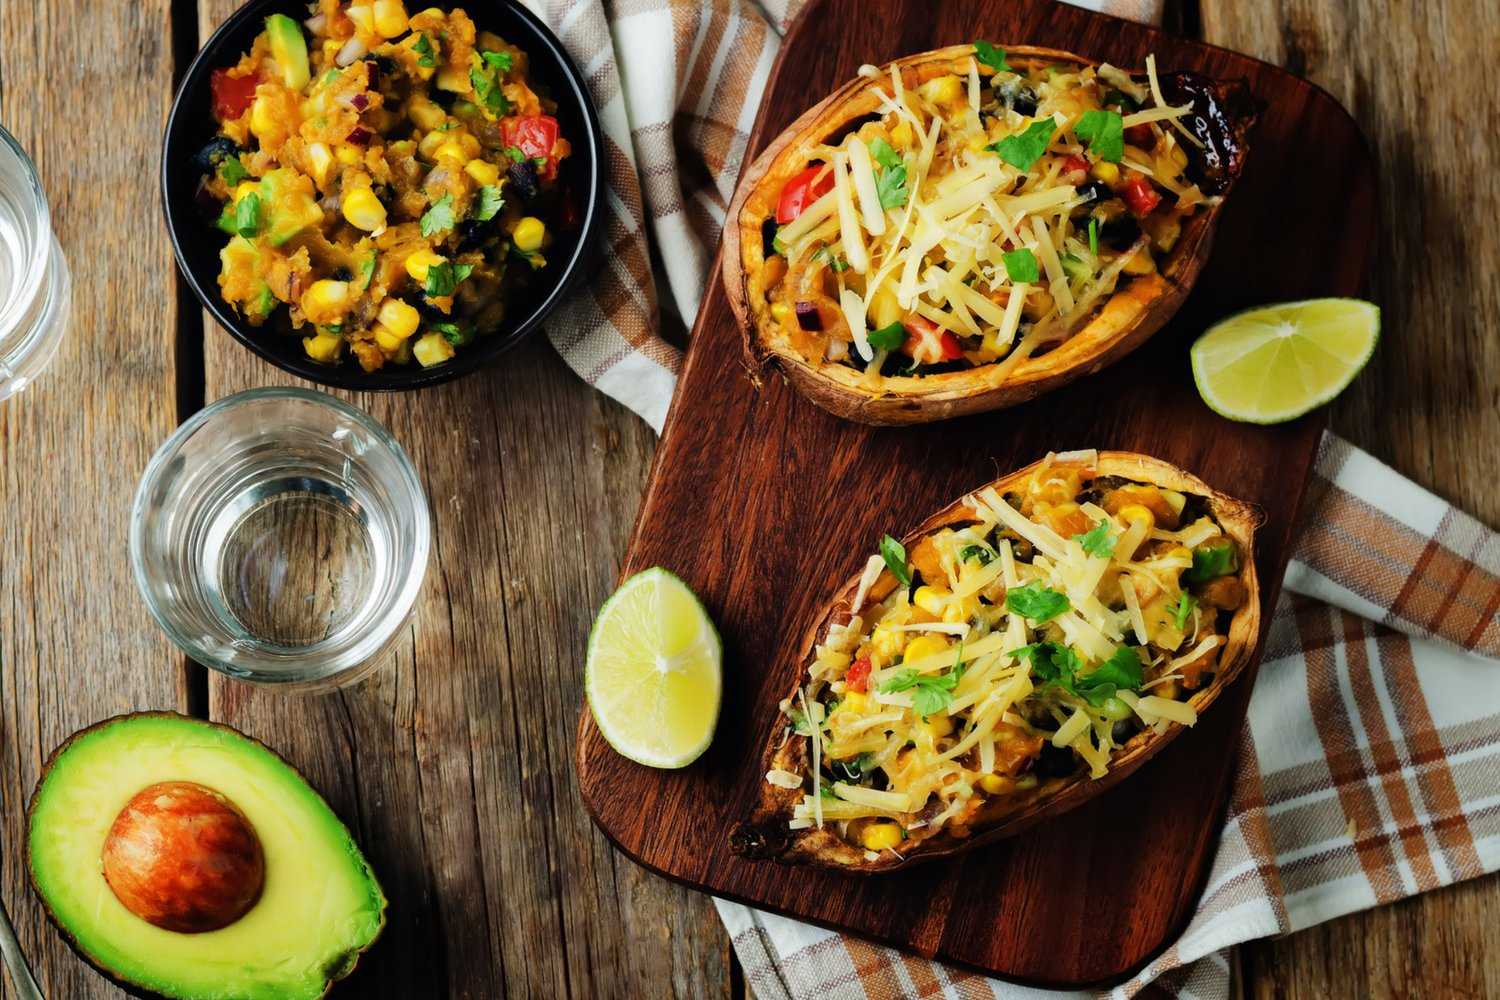 Healthy meal plan with Southwest Stuffed Sweet Potatoes for lunch.